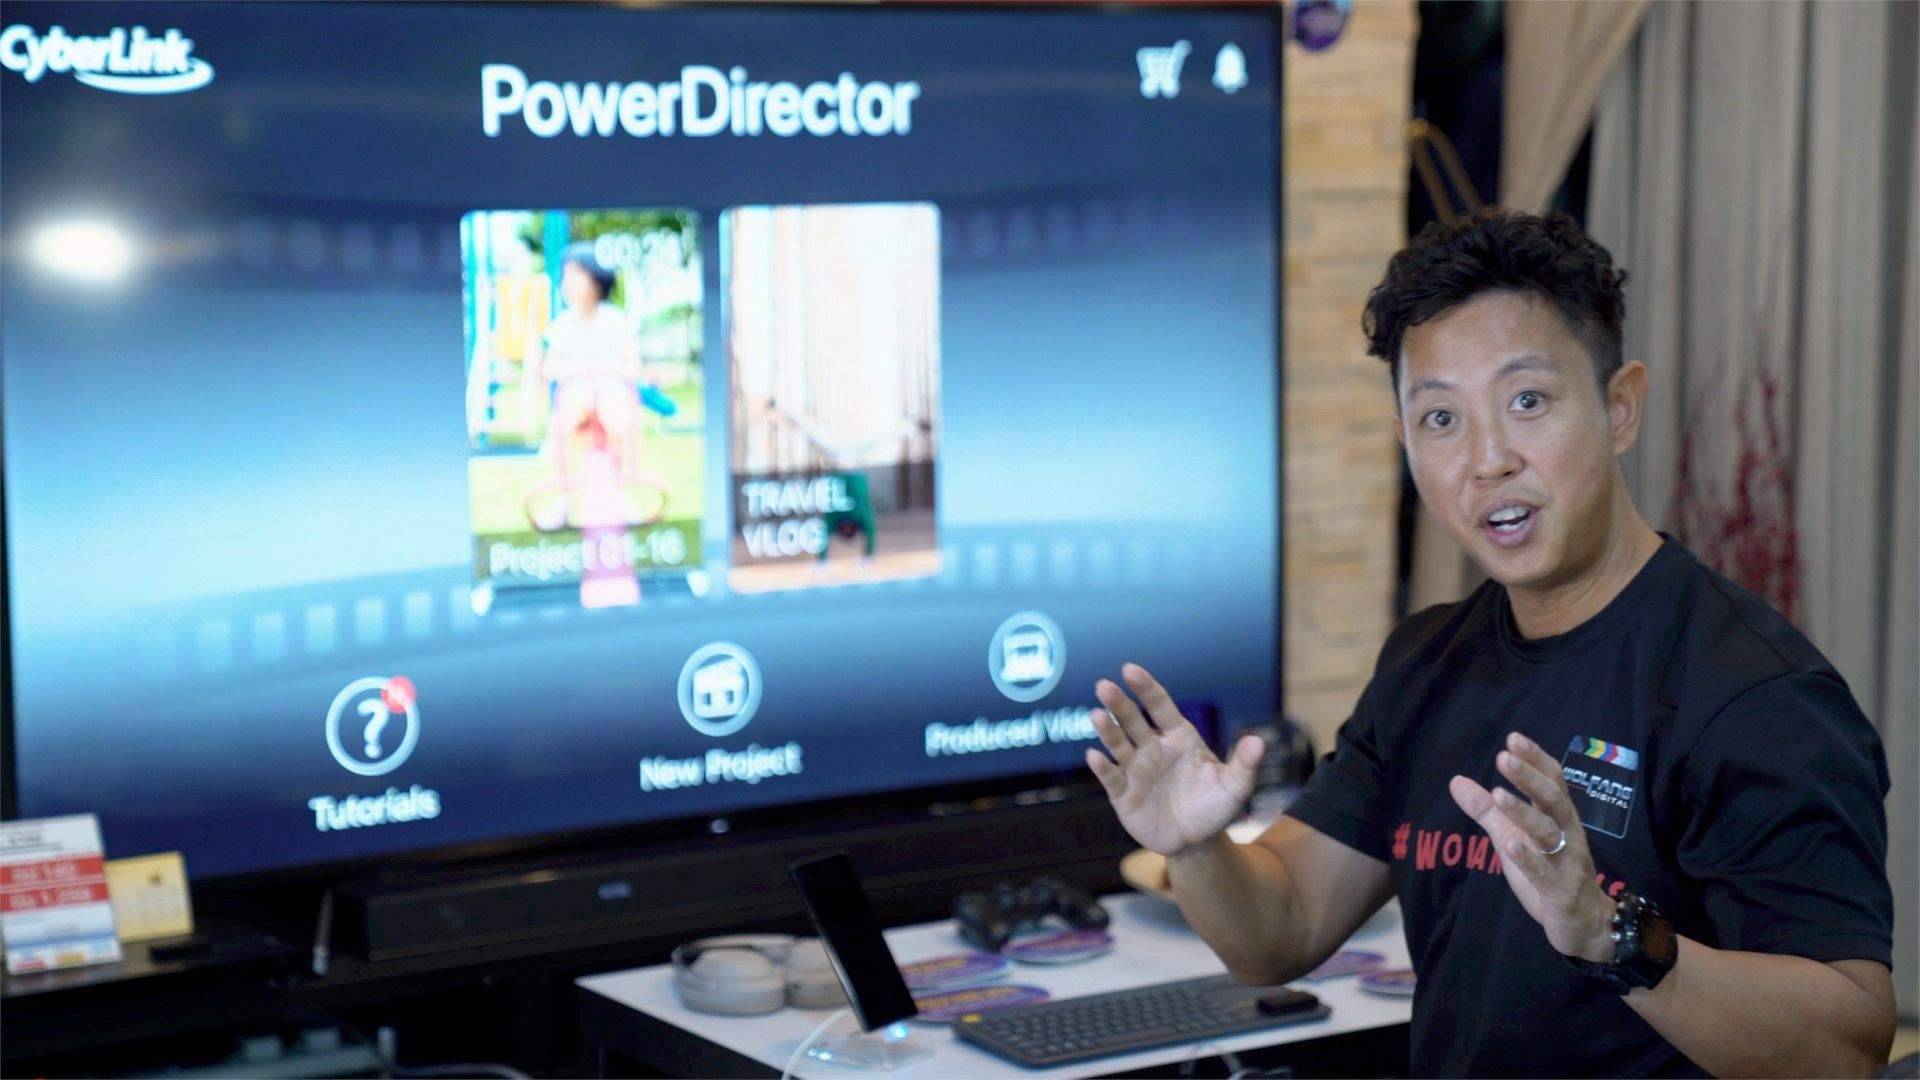 Power Director video editing course by Baron Abas, official Cyberlink trainer at WolFang Digital